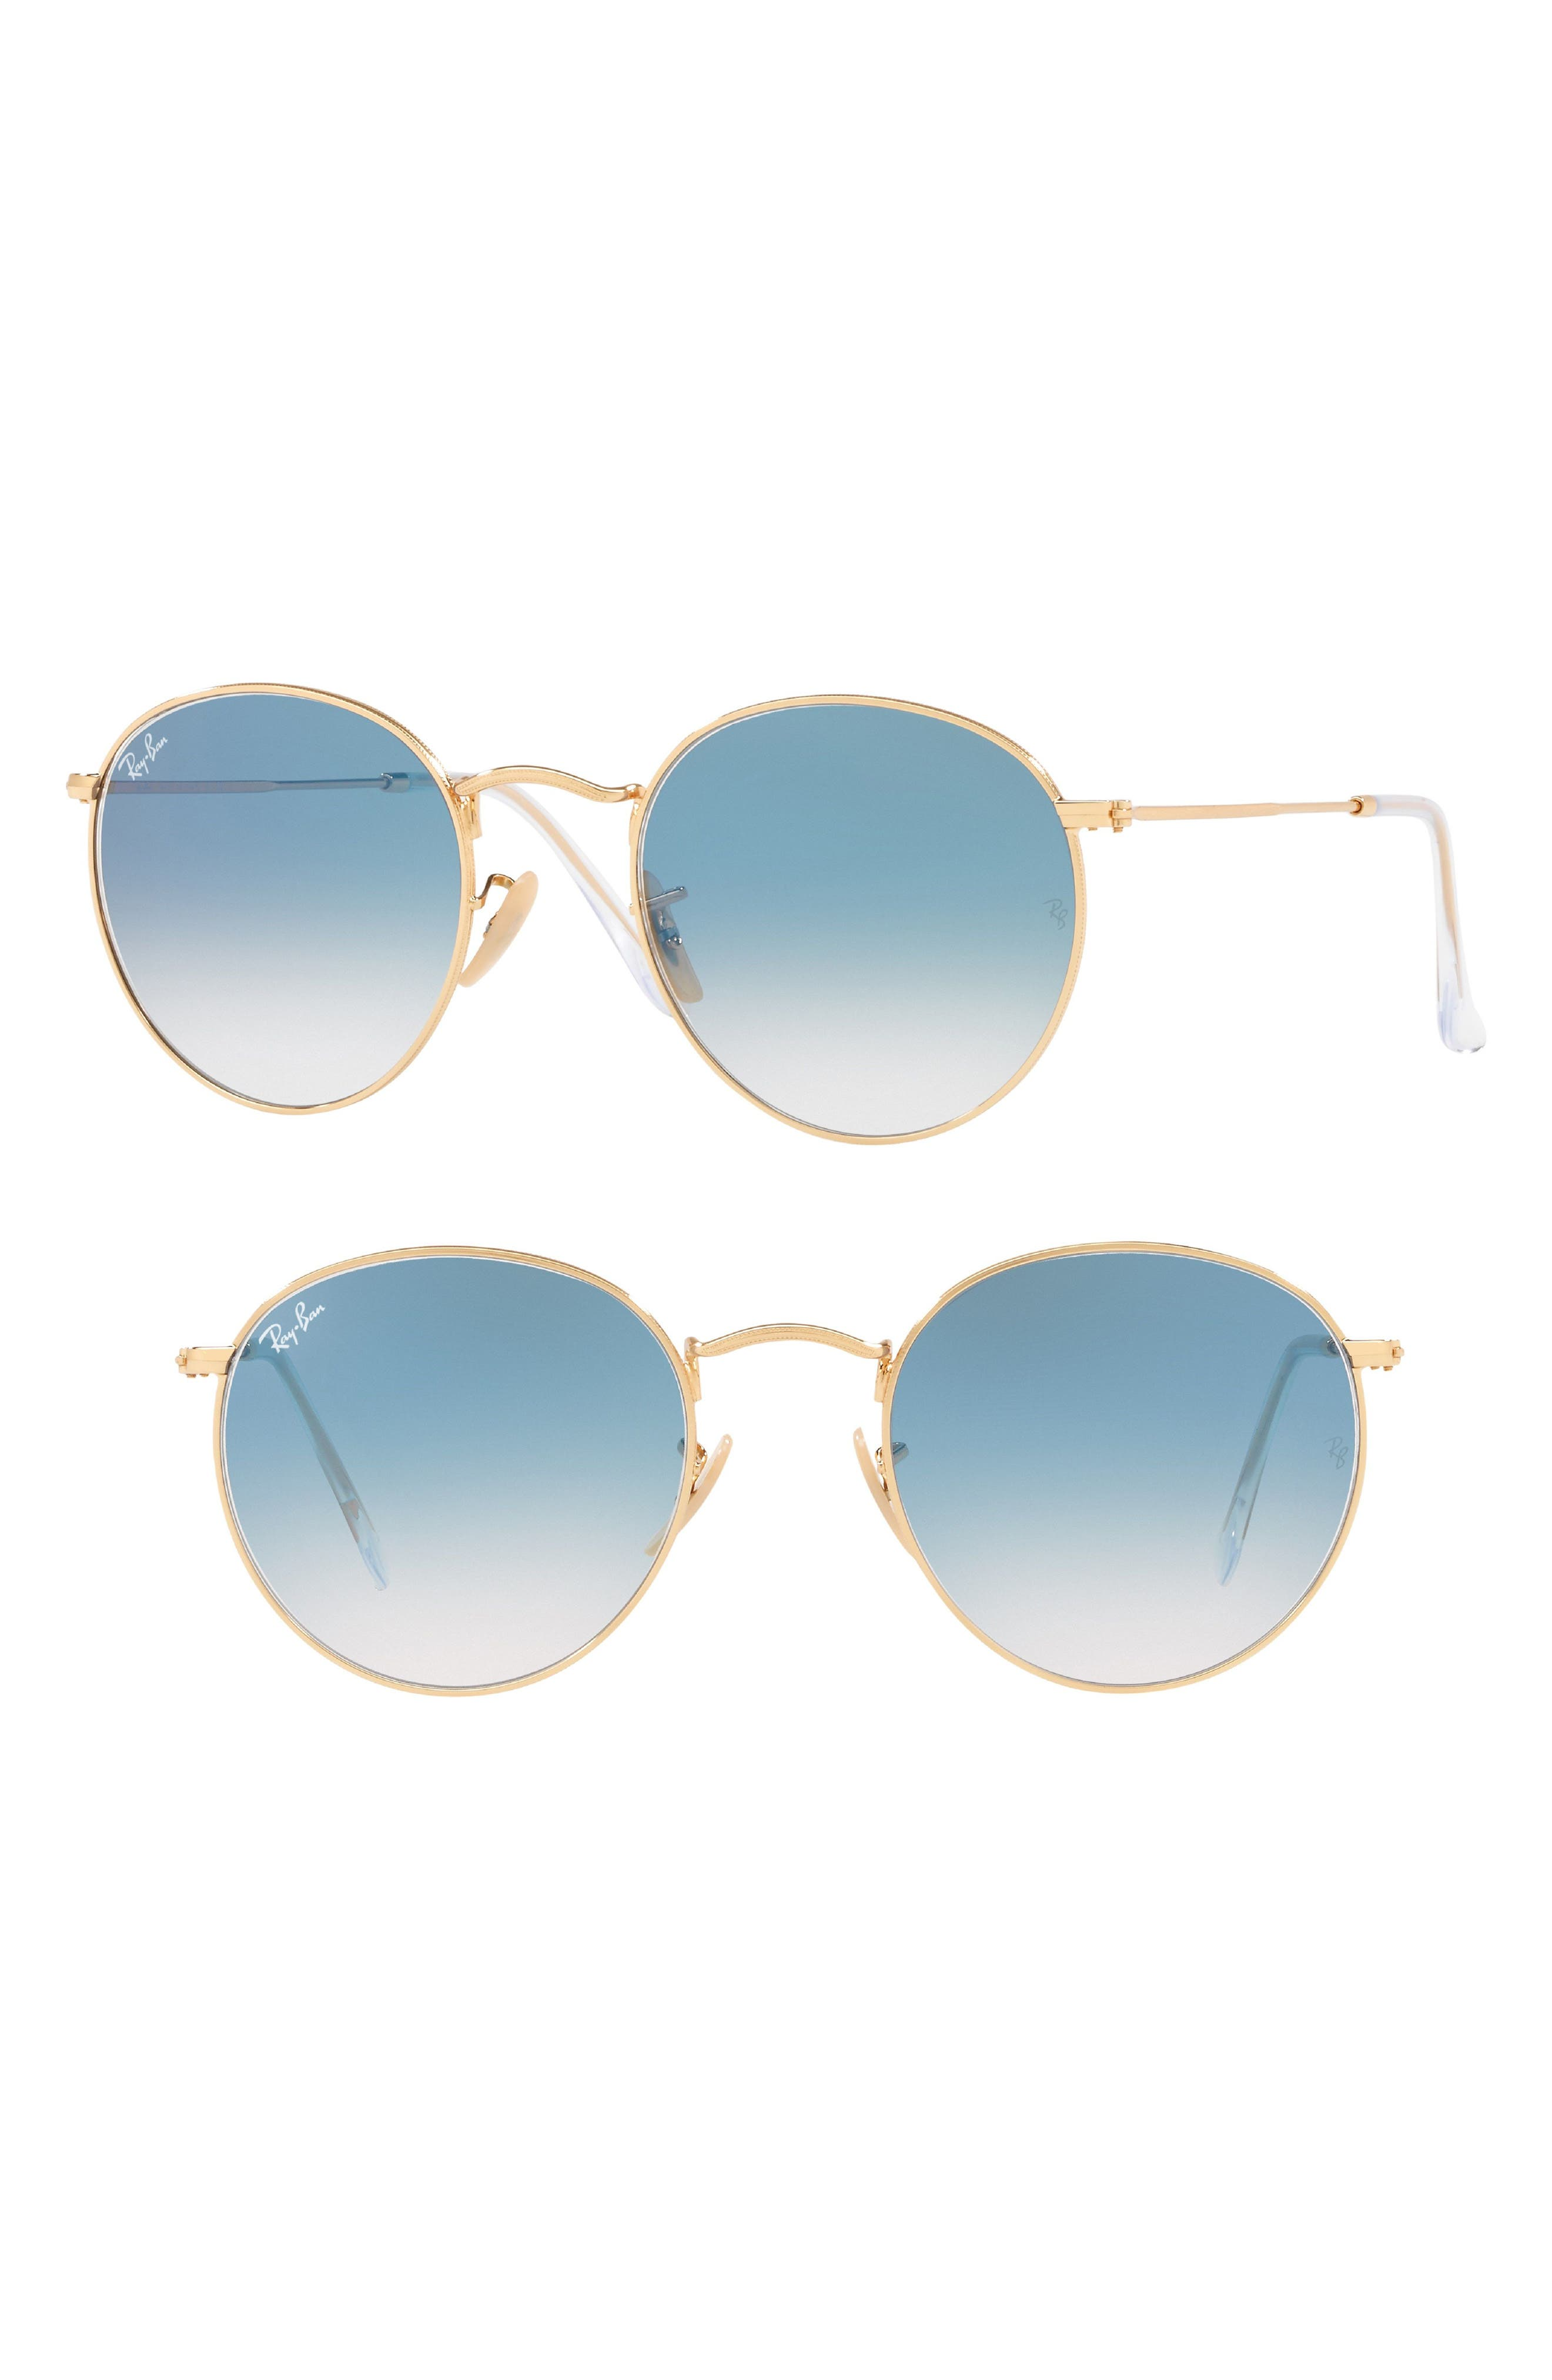 53mm Round Retro Sunglasses,                             Main thumbnail 1, color,                             Gold